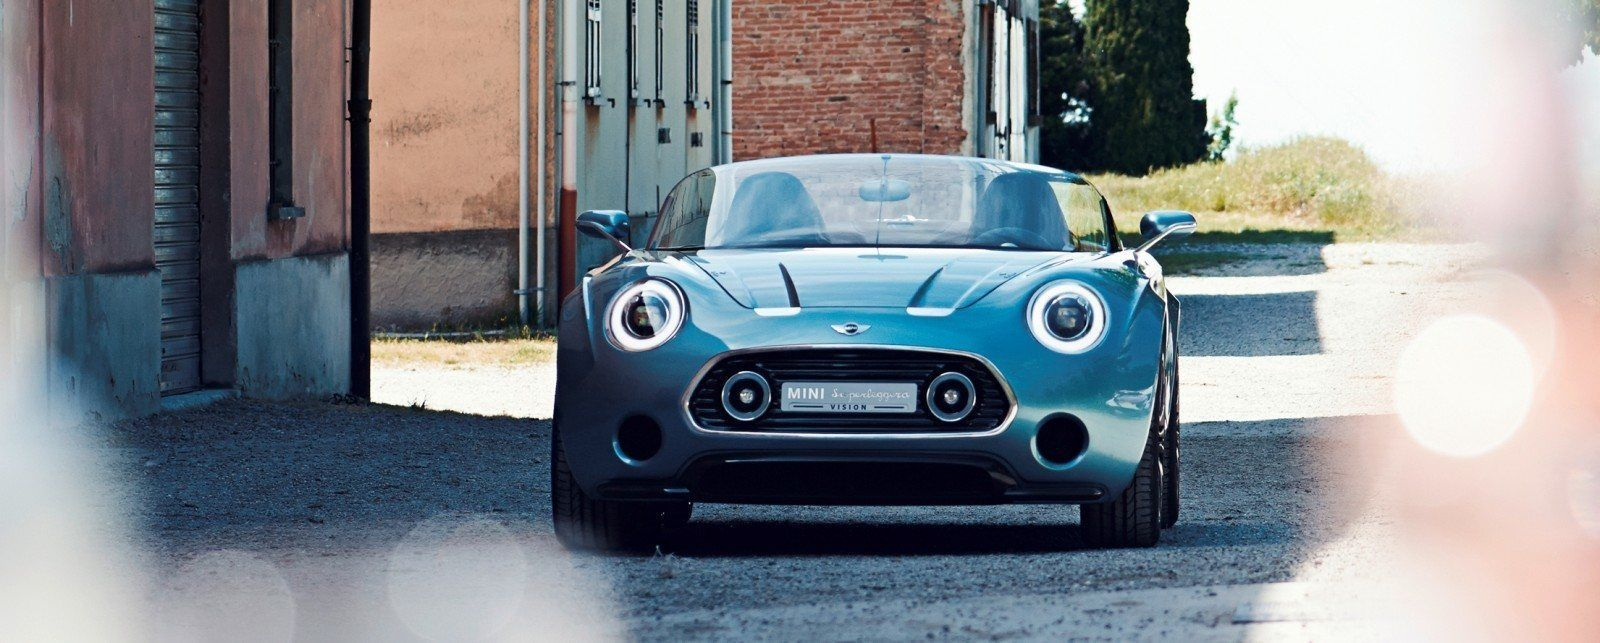 2014 MINI Superleggera Concept is Dreamy Roofless Speedster11